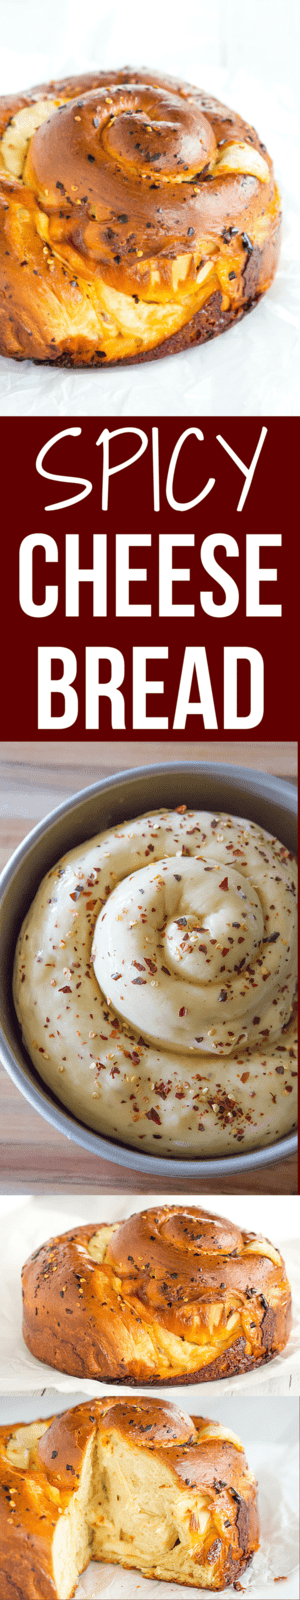 Spicy Cheese Bread - This recipe makes a huge loaf of a rich brioche-like bread loaded with provolone and Monterey Jack cheeses, and speckled with crushed red pepper flakes. | browneyedbaker.com